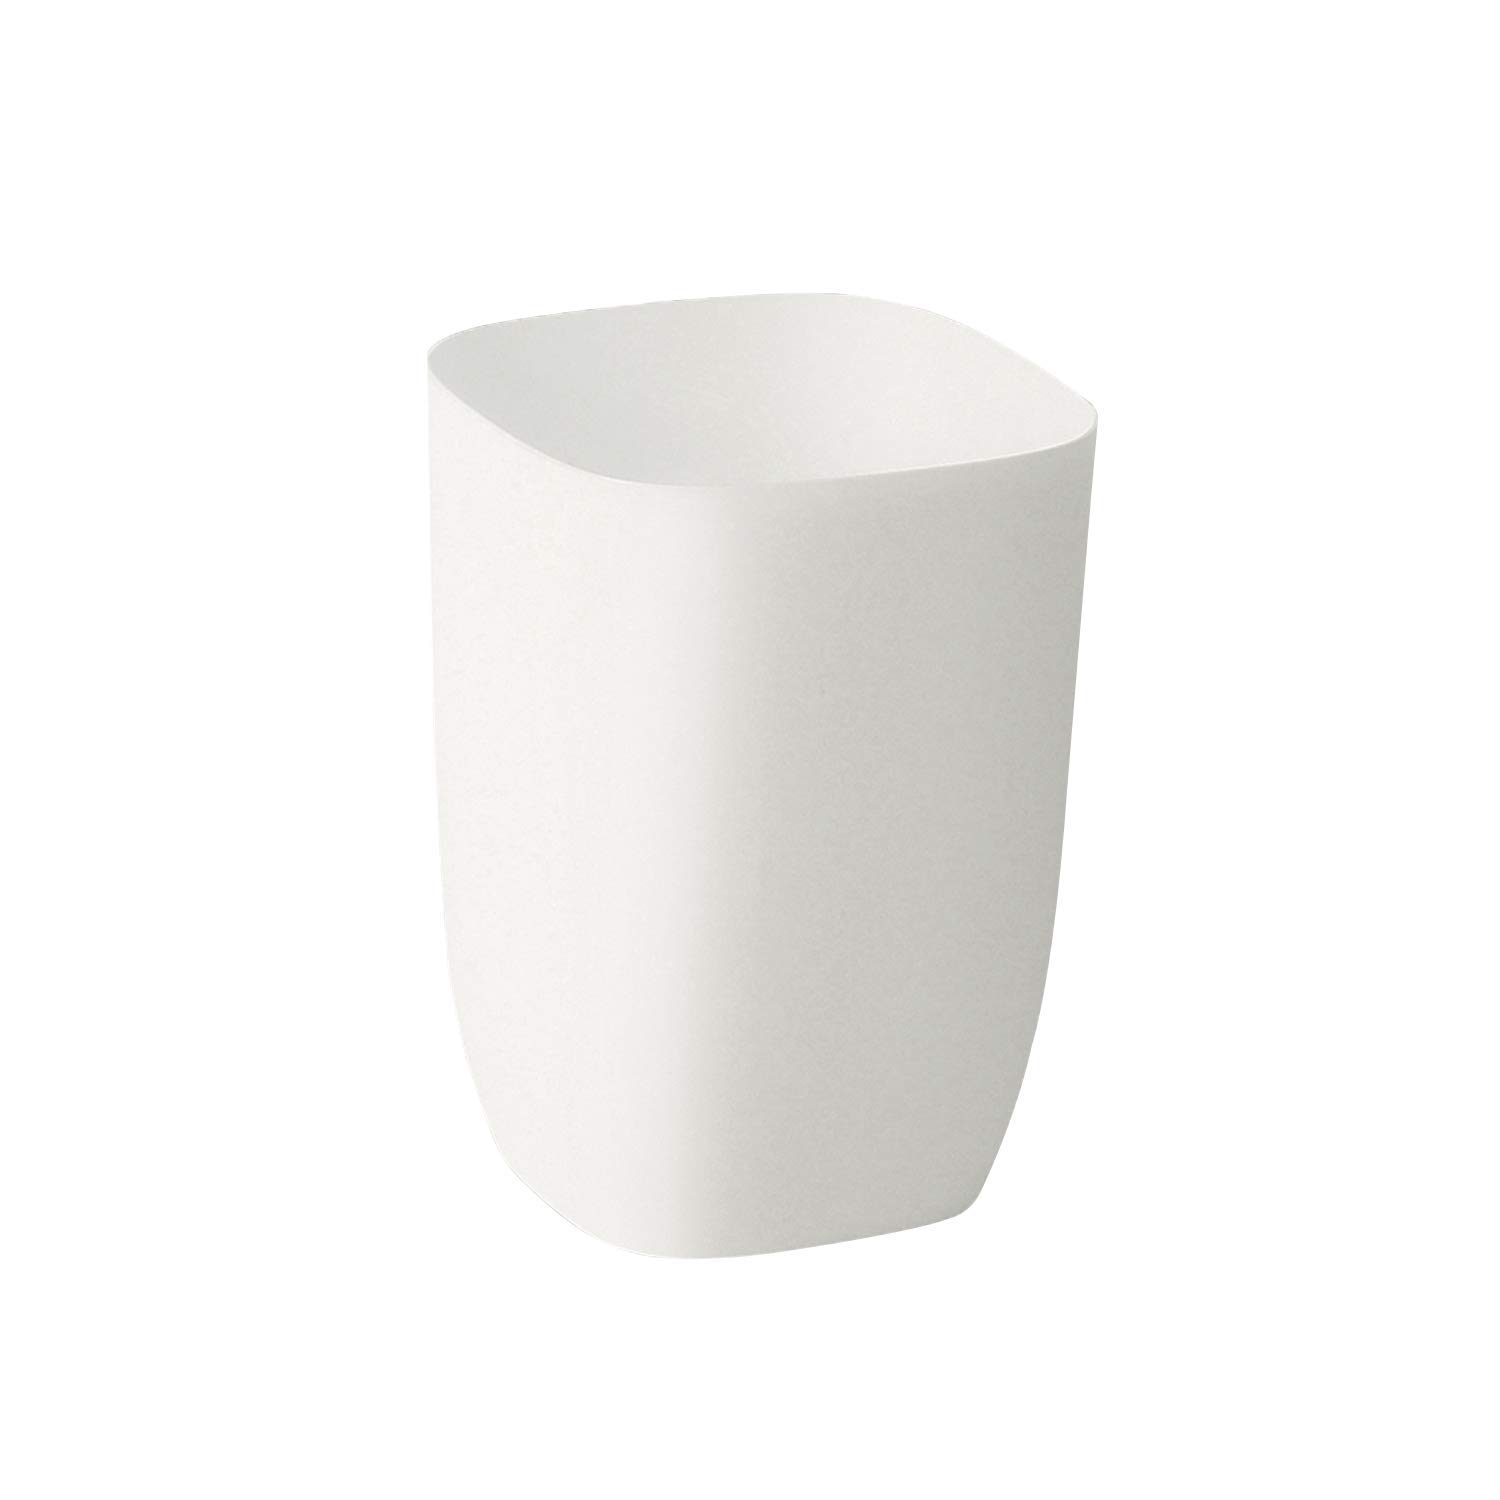 mingol Small White Garbage Can for Bathroom, Bedroom, Kitchen, Slim Cute Plastic Waste Basket for Office, 7L, Matt